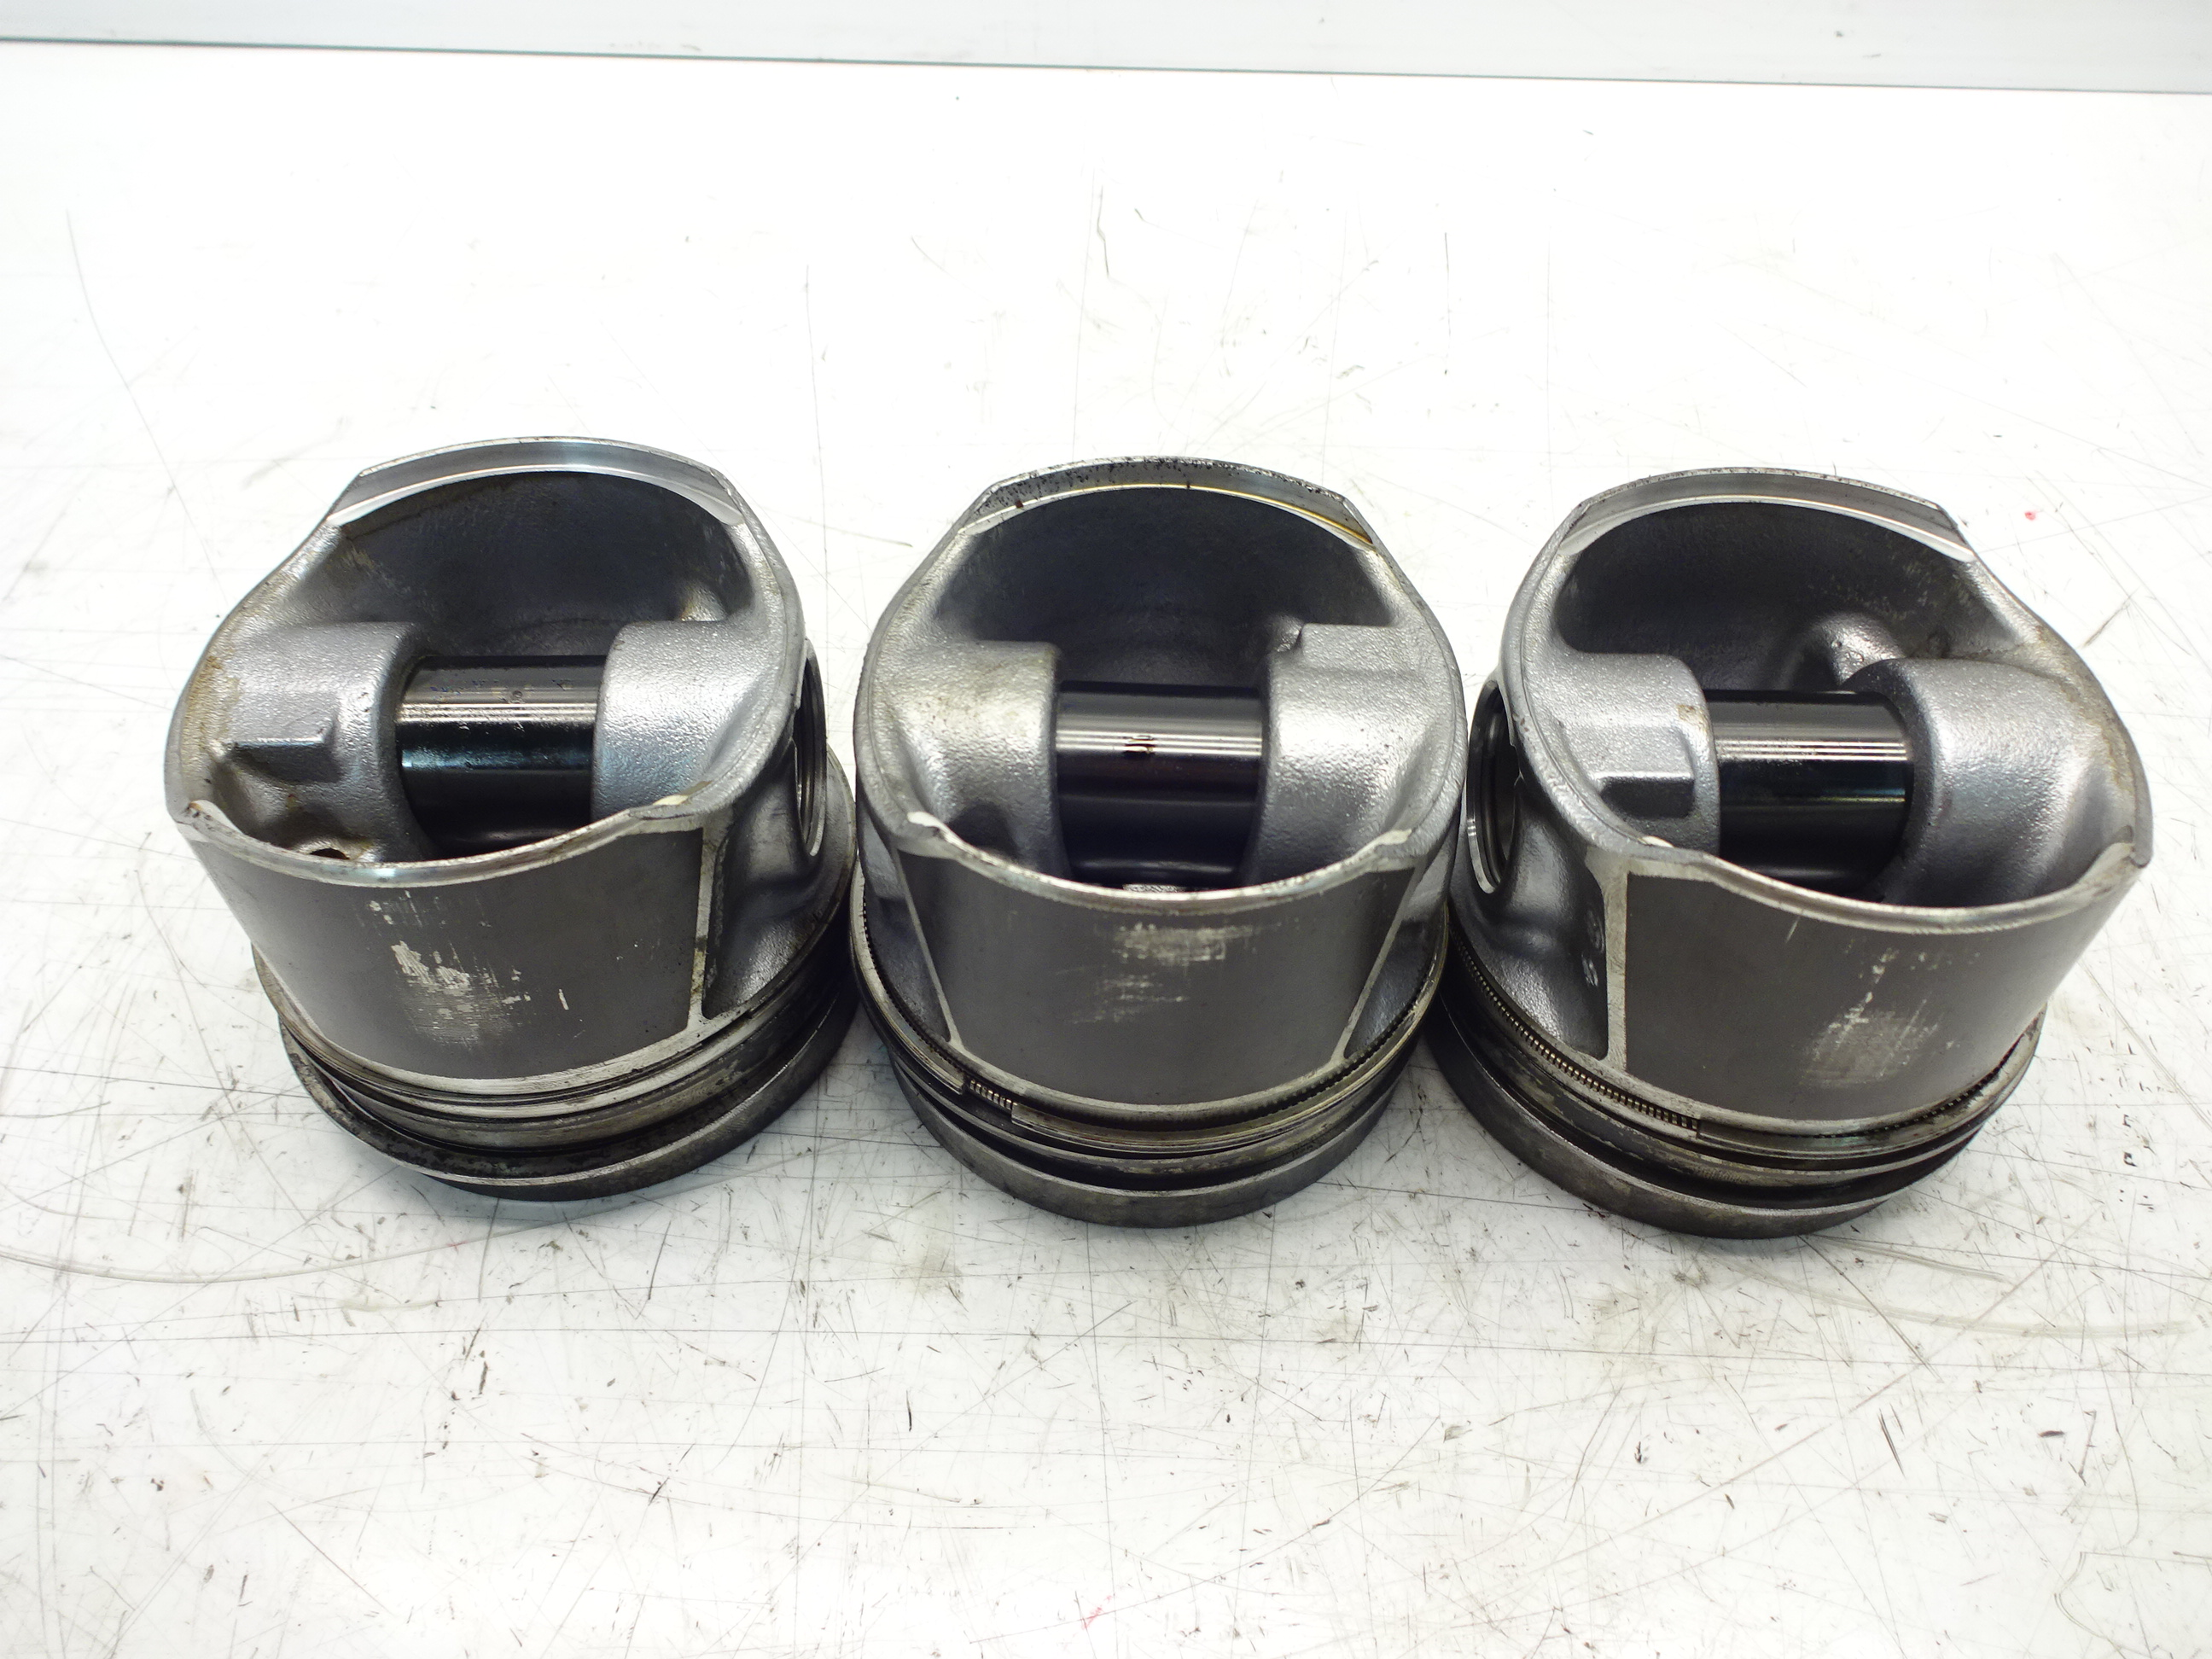 VW//AUDI//SEAT//SKODA 2.0 TDI PD piston with conrod 038J BHS DF V400 H72